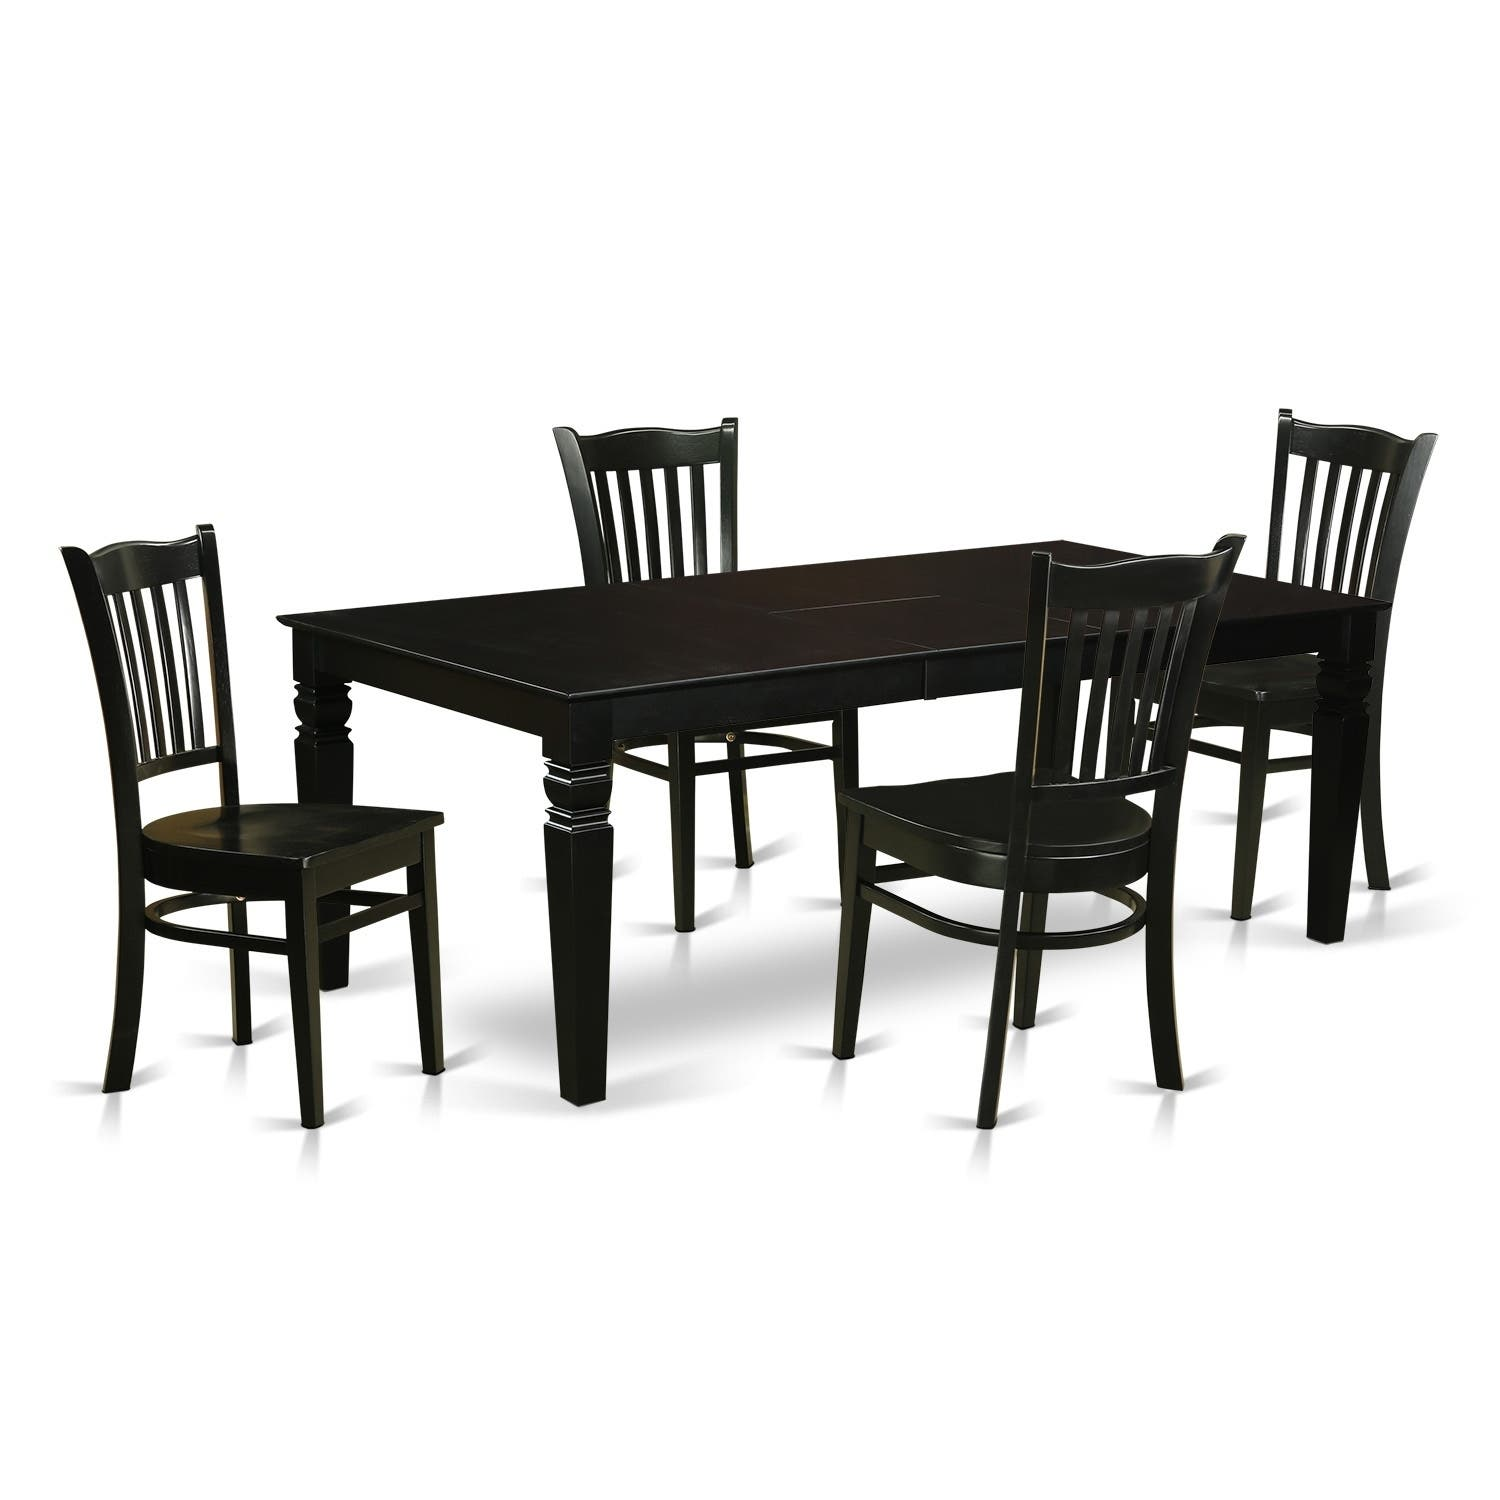 Dining room sets for less for 3 pc dining room set